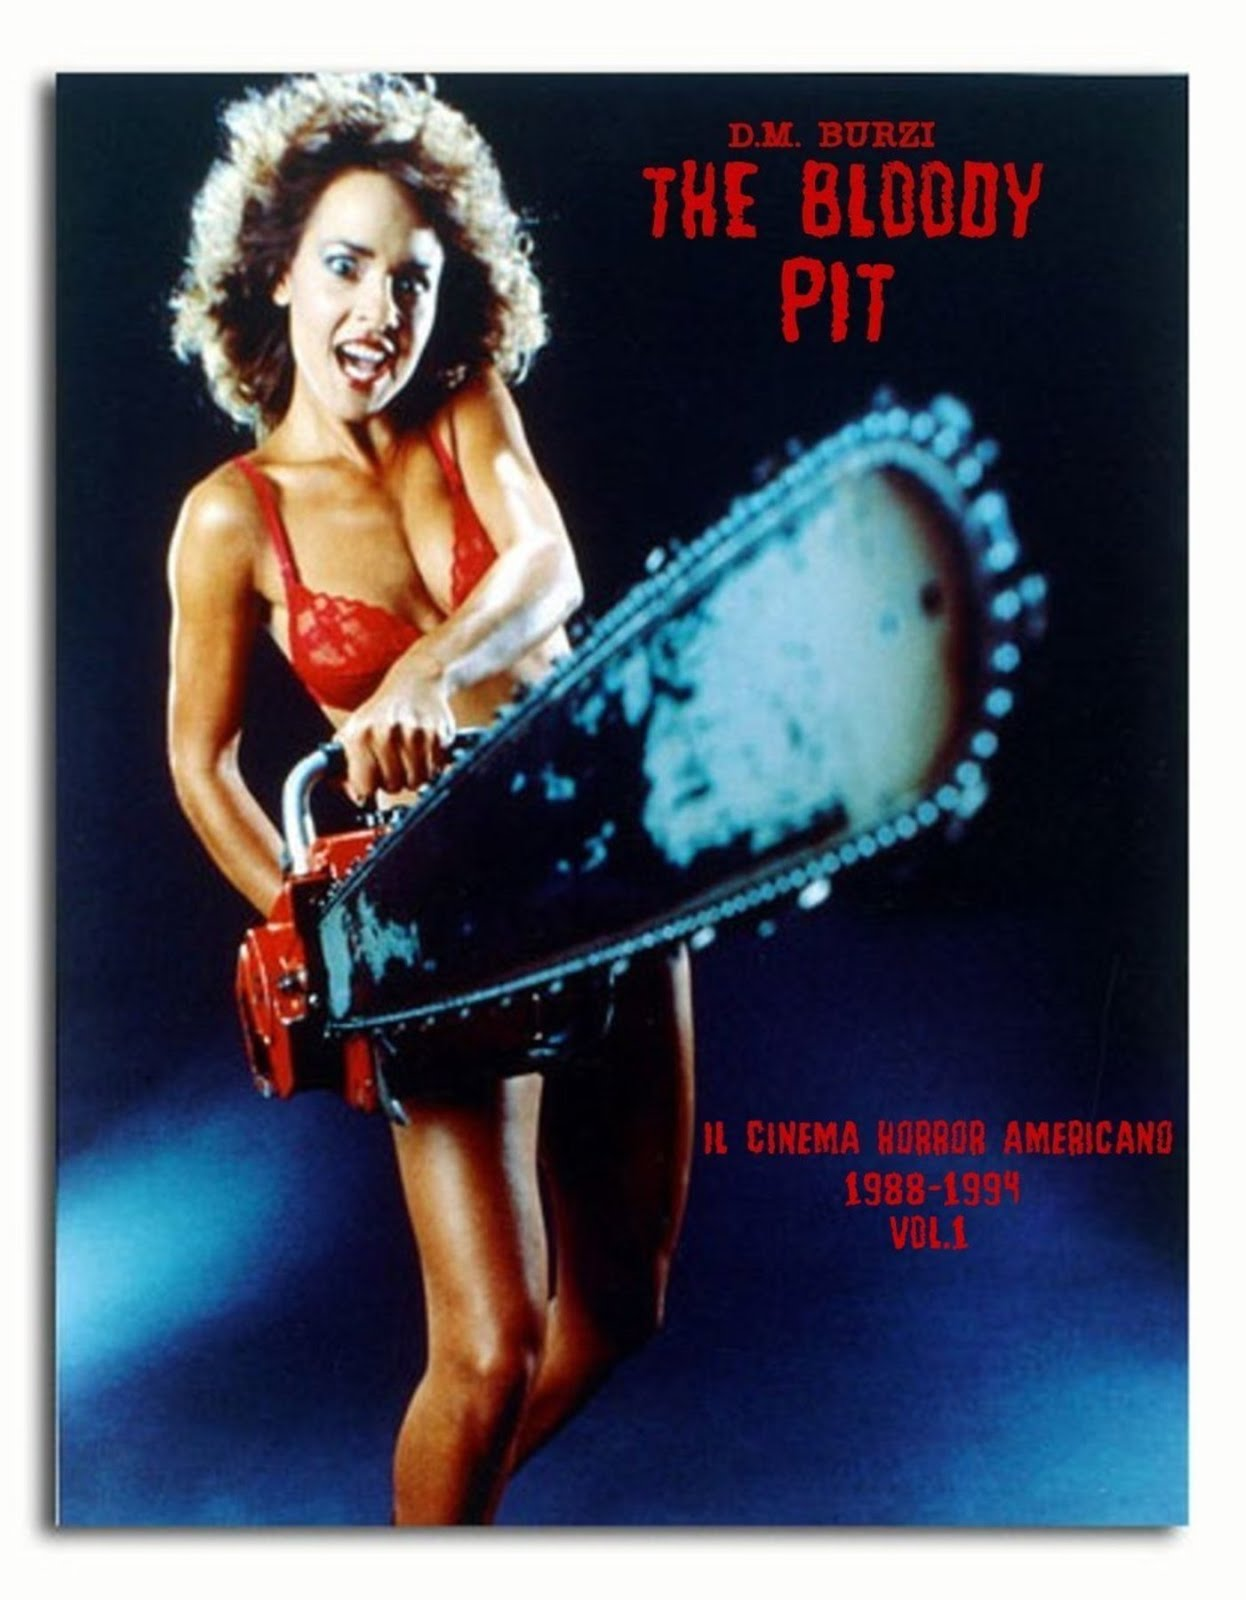 The Bloody Pit Vol.1